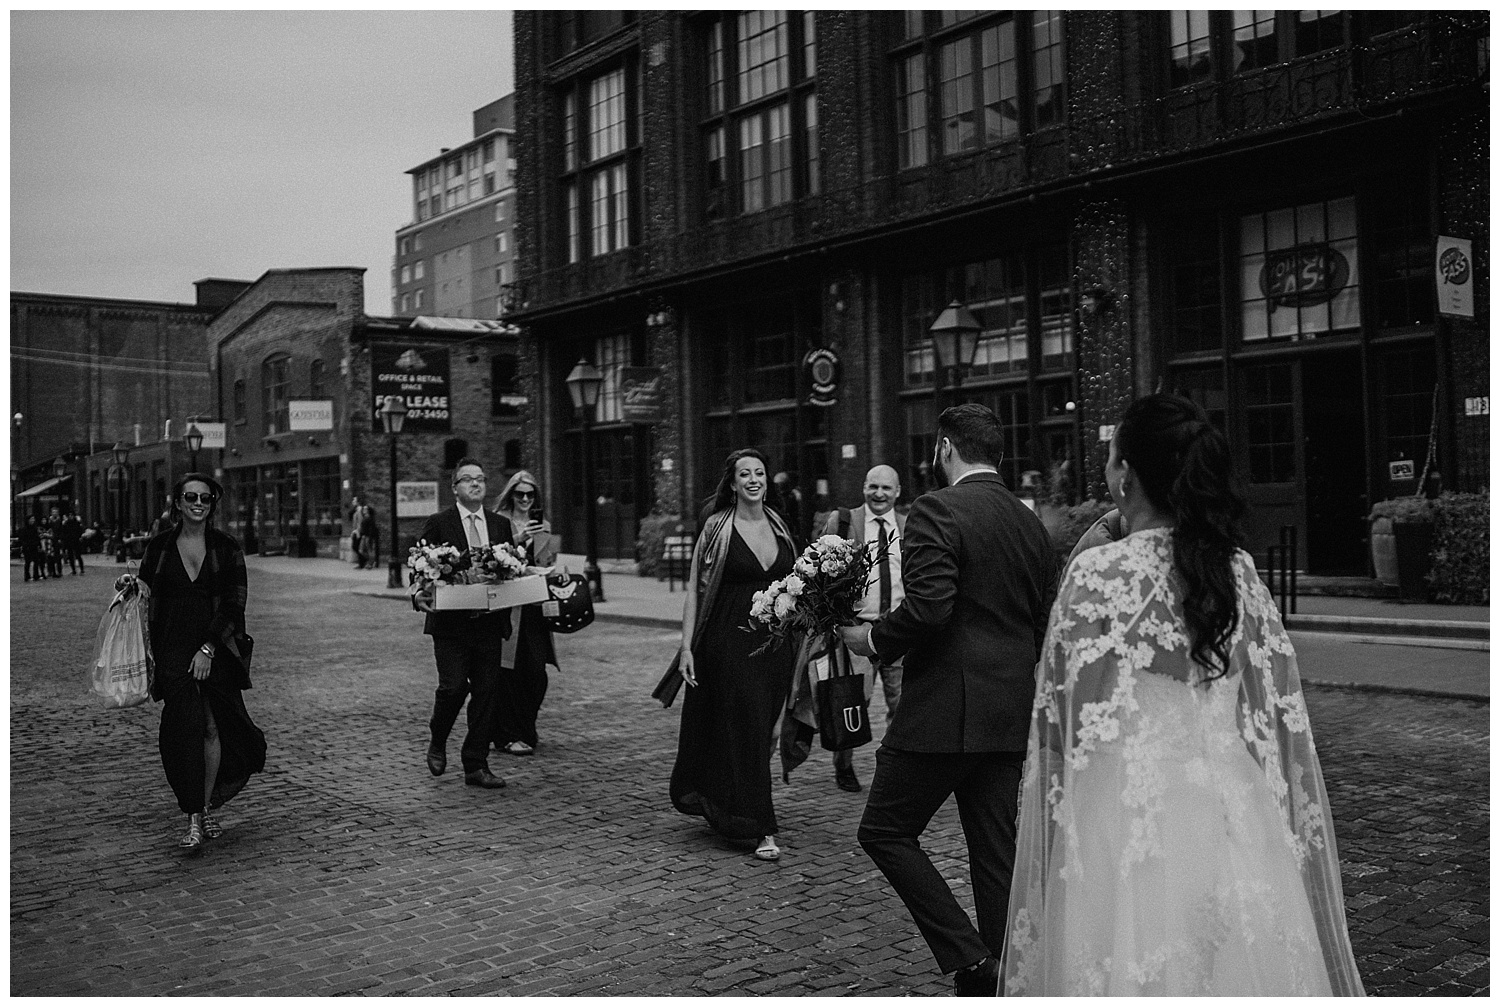 Katie Marie Photography | Archeo Wedding Arta Gallery Wedding | Distillery District Wedding | Toronto Wedding Photographer | Hamilton Toronto Ontario Wedding Photographer |_0037.jpg